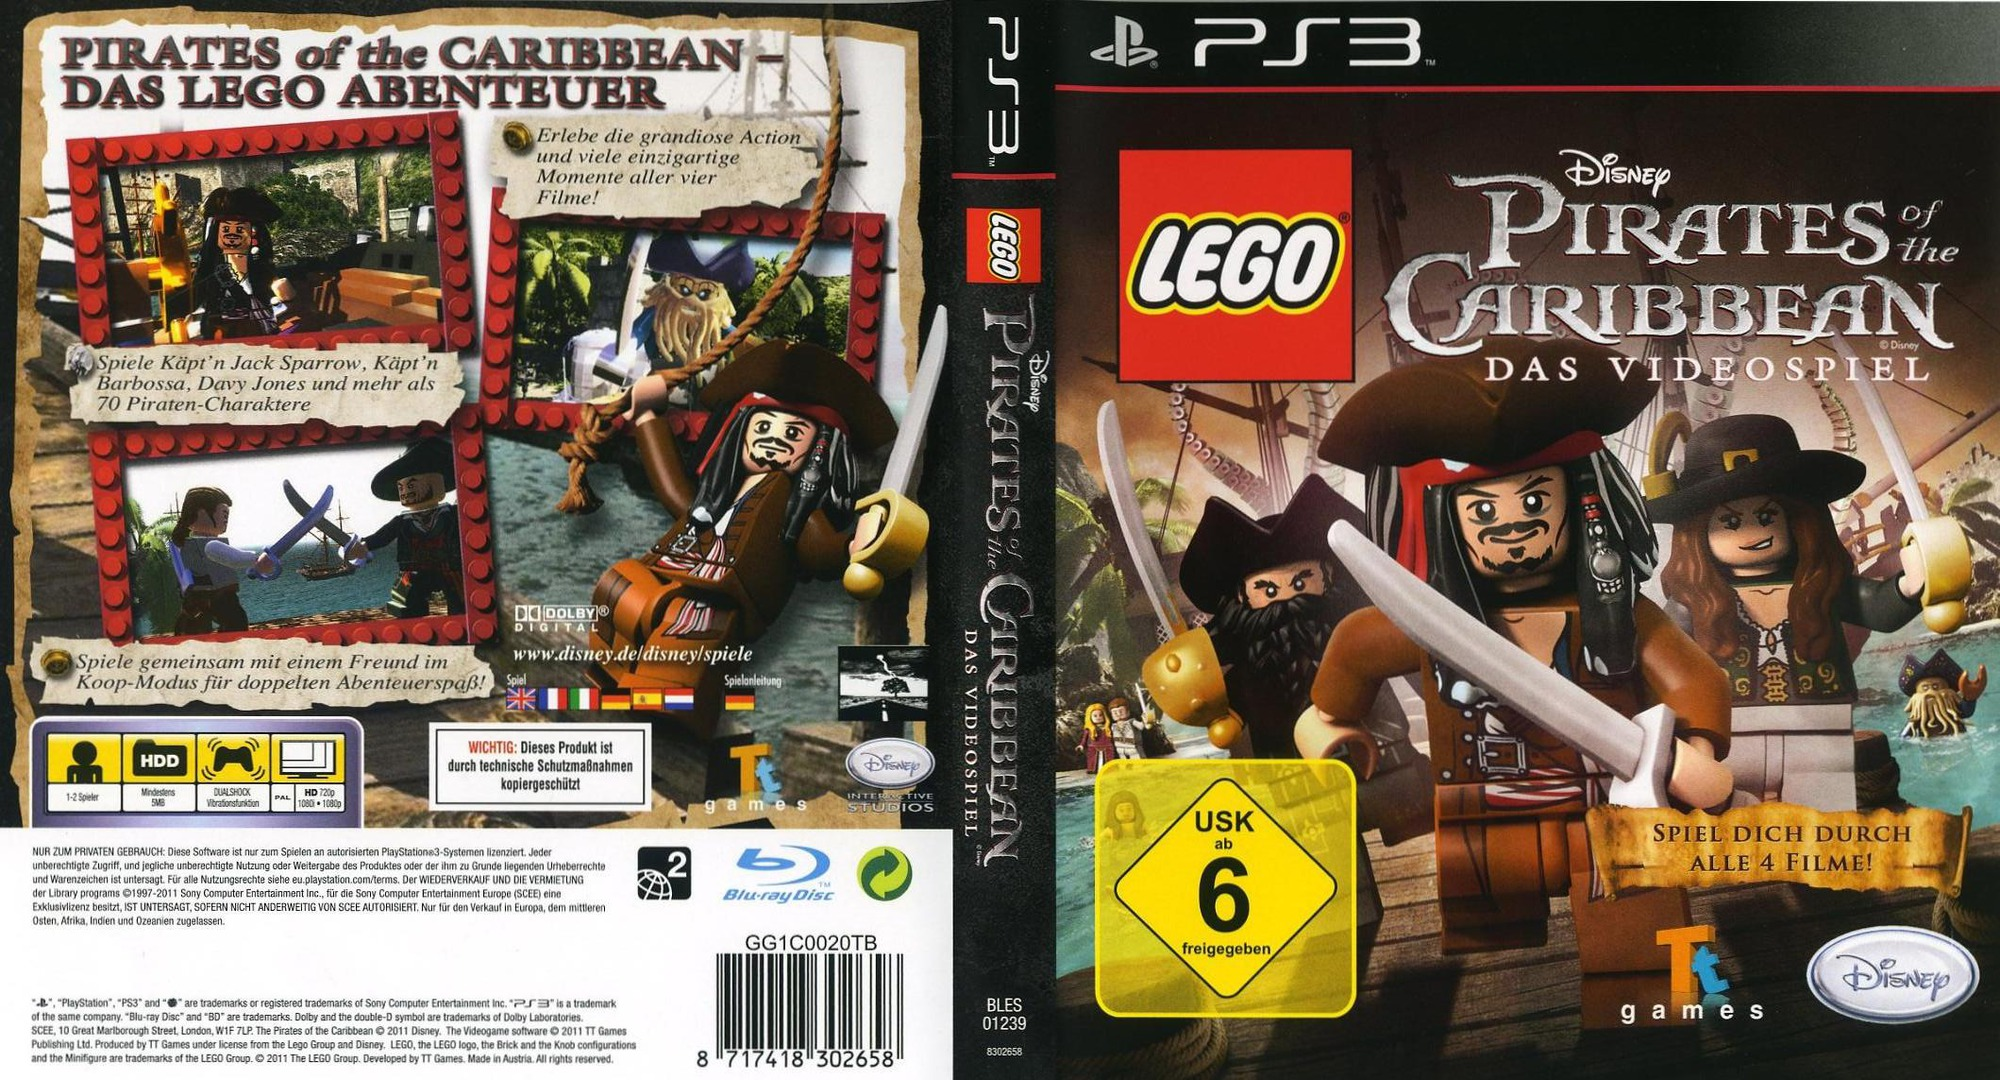 Pirates of the Caribbean: Das Videospiel PS3 coverfullHQ (BLES01239)